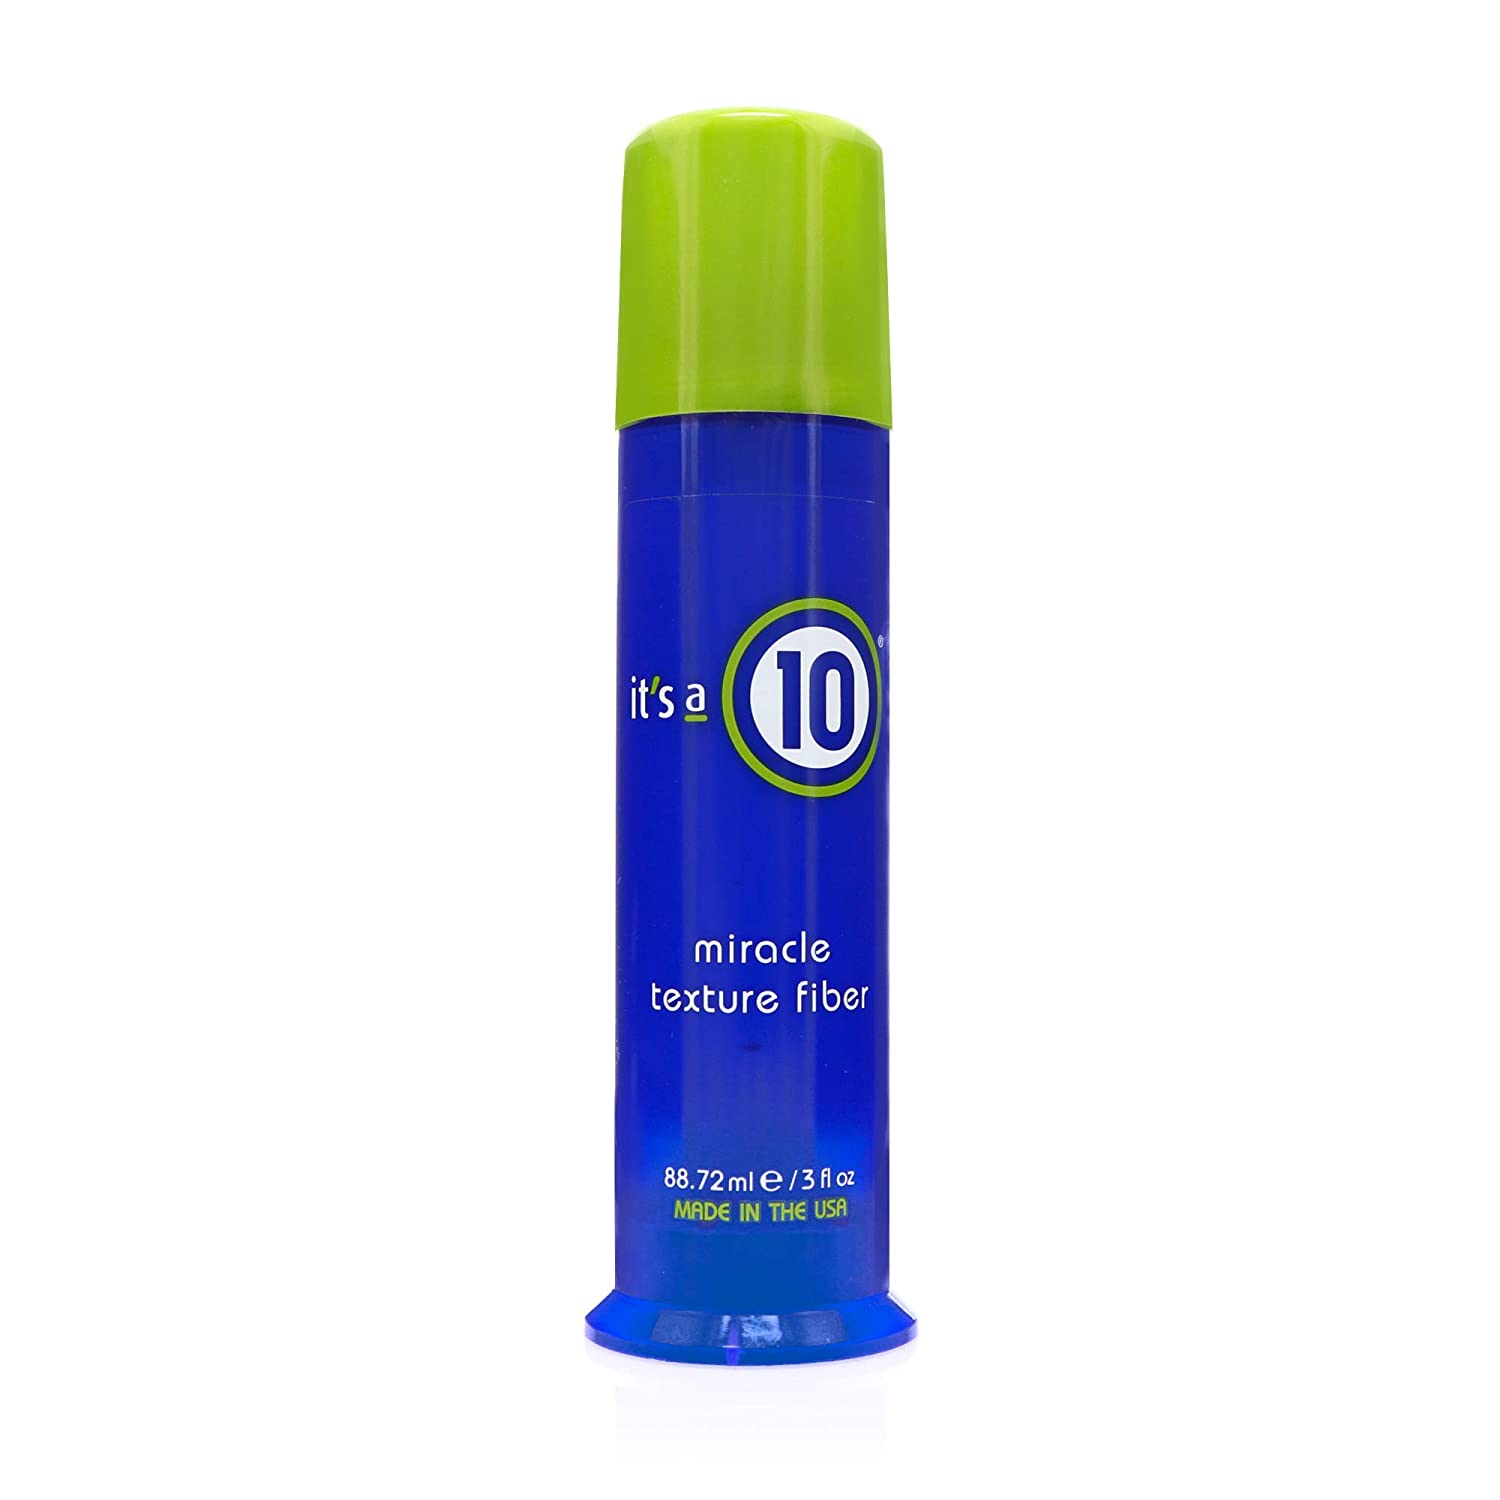 It's a 10 Haircare Miracle Texture Fiber, 3 fl. oz.